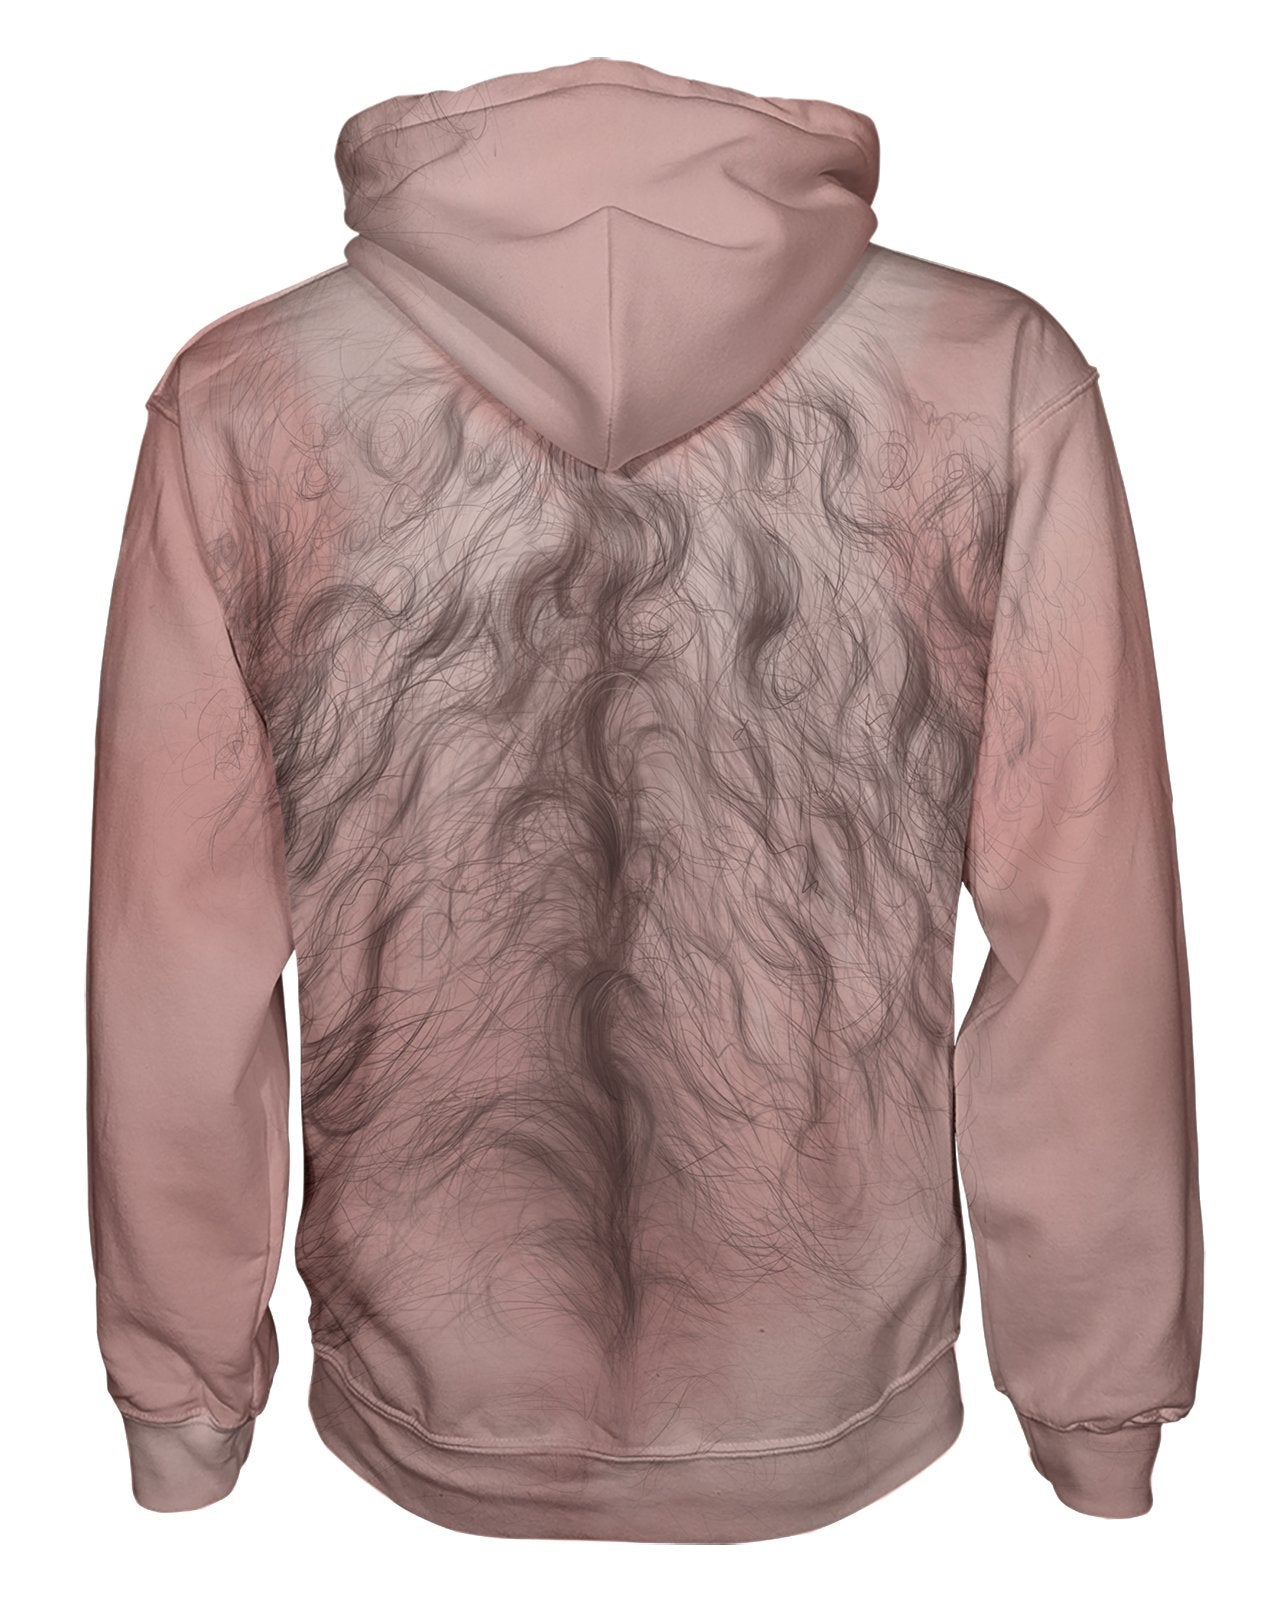 Hairy Chest Zip Hoodie